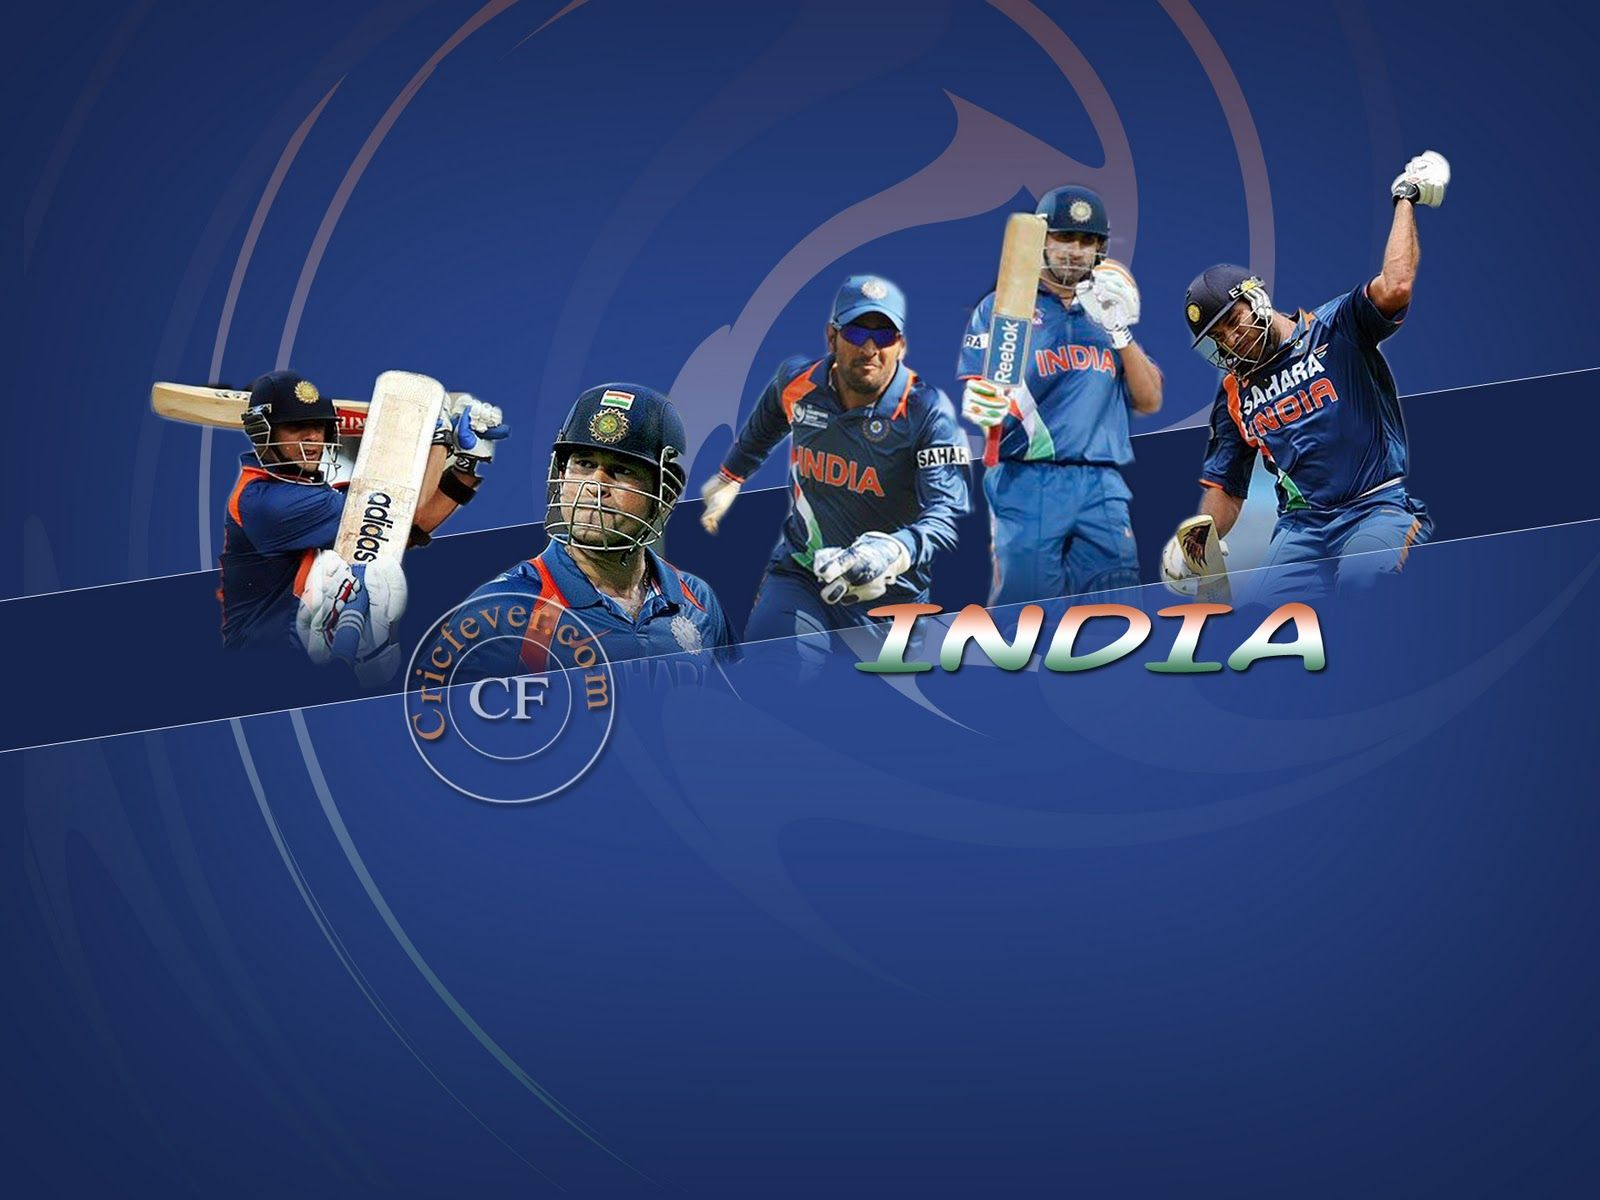 16 India Cricket Team Wallpapers